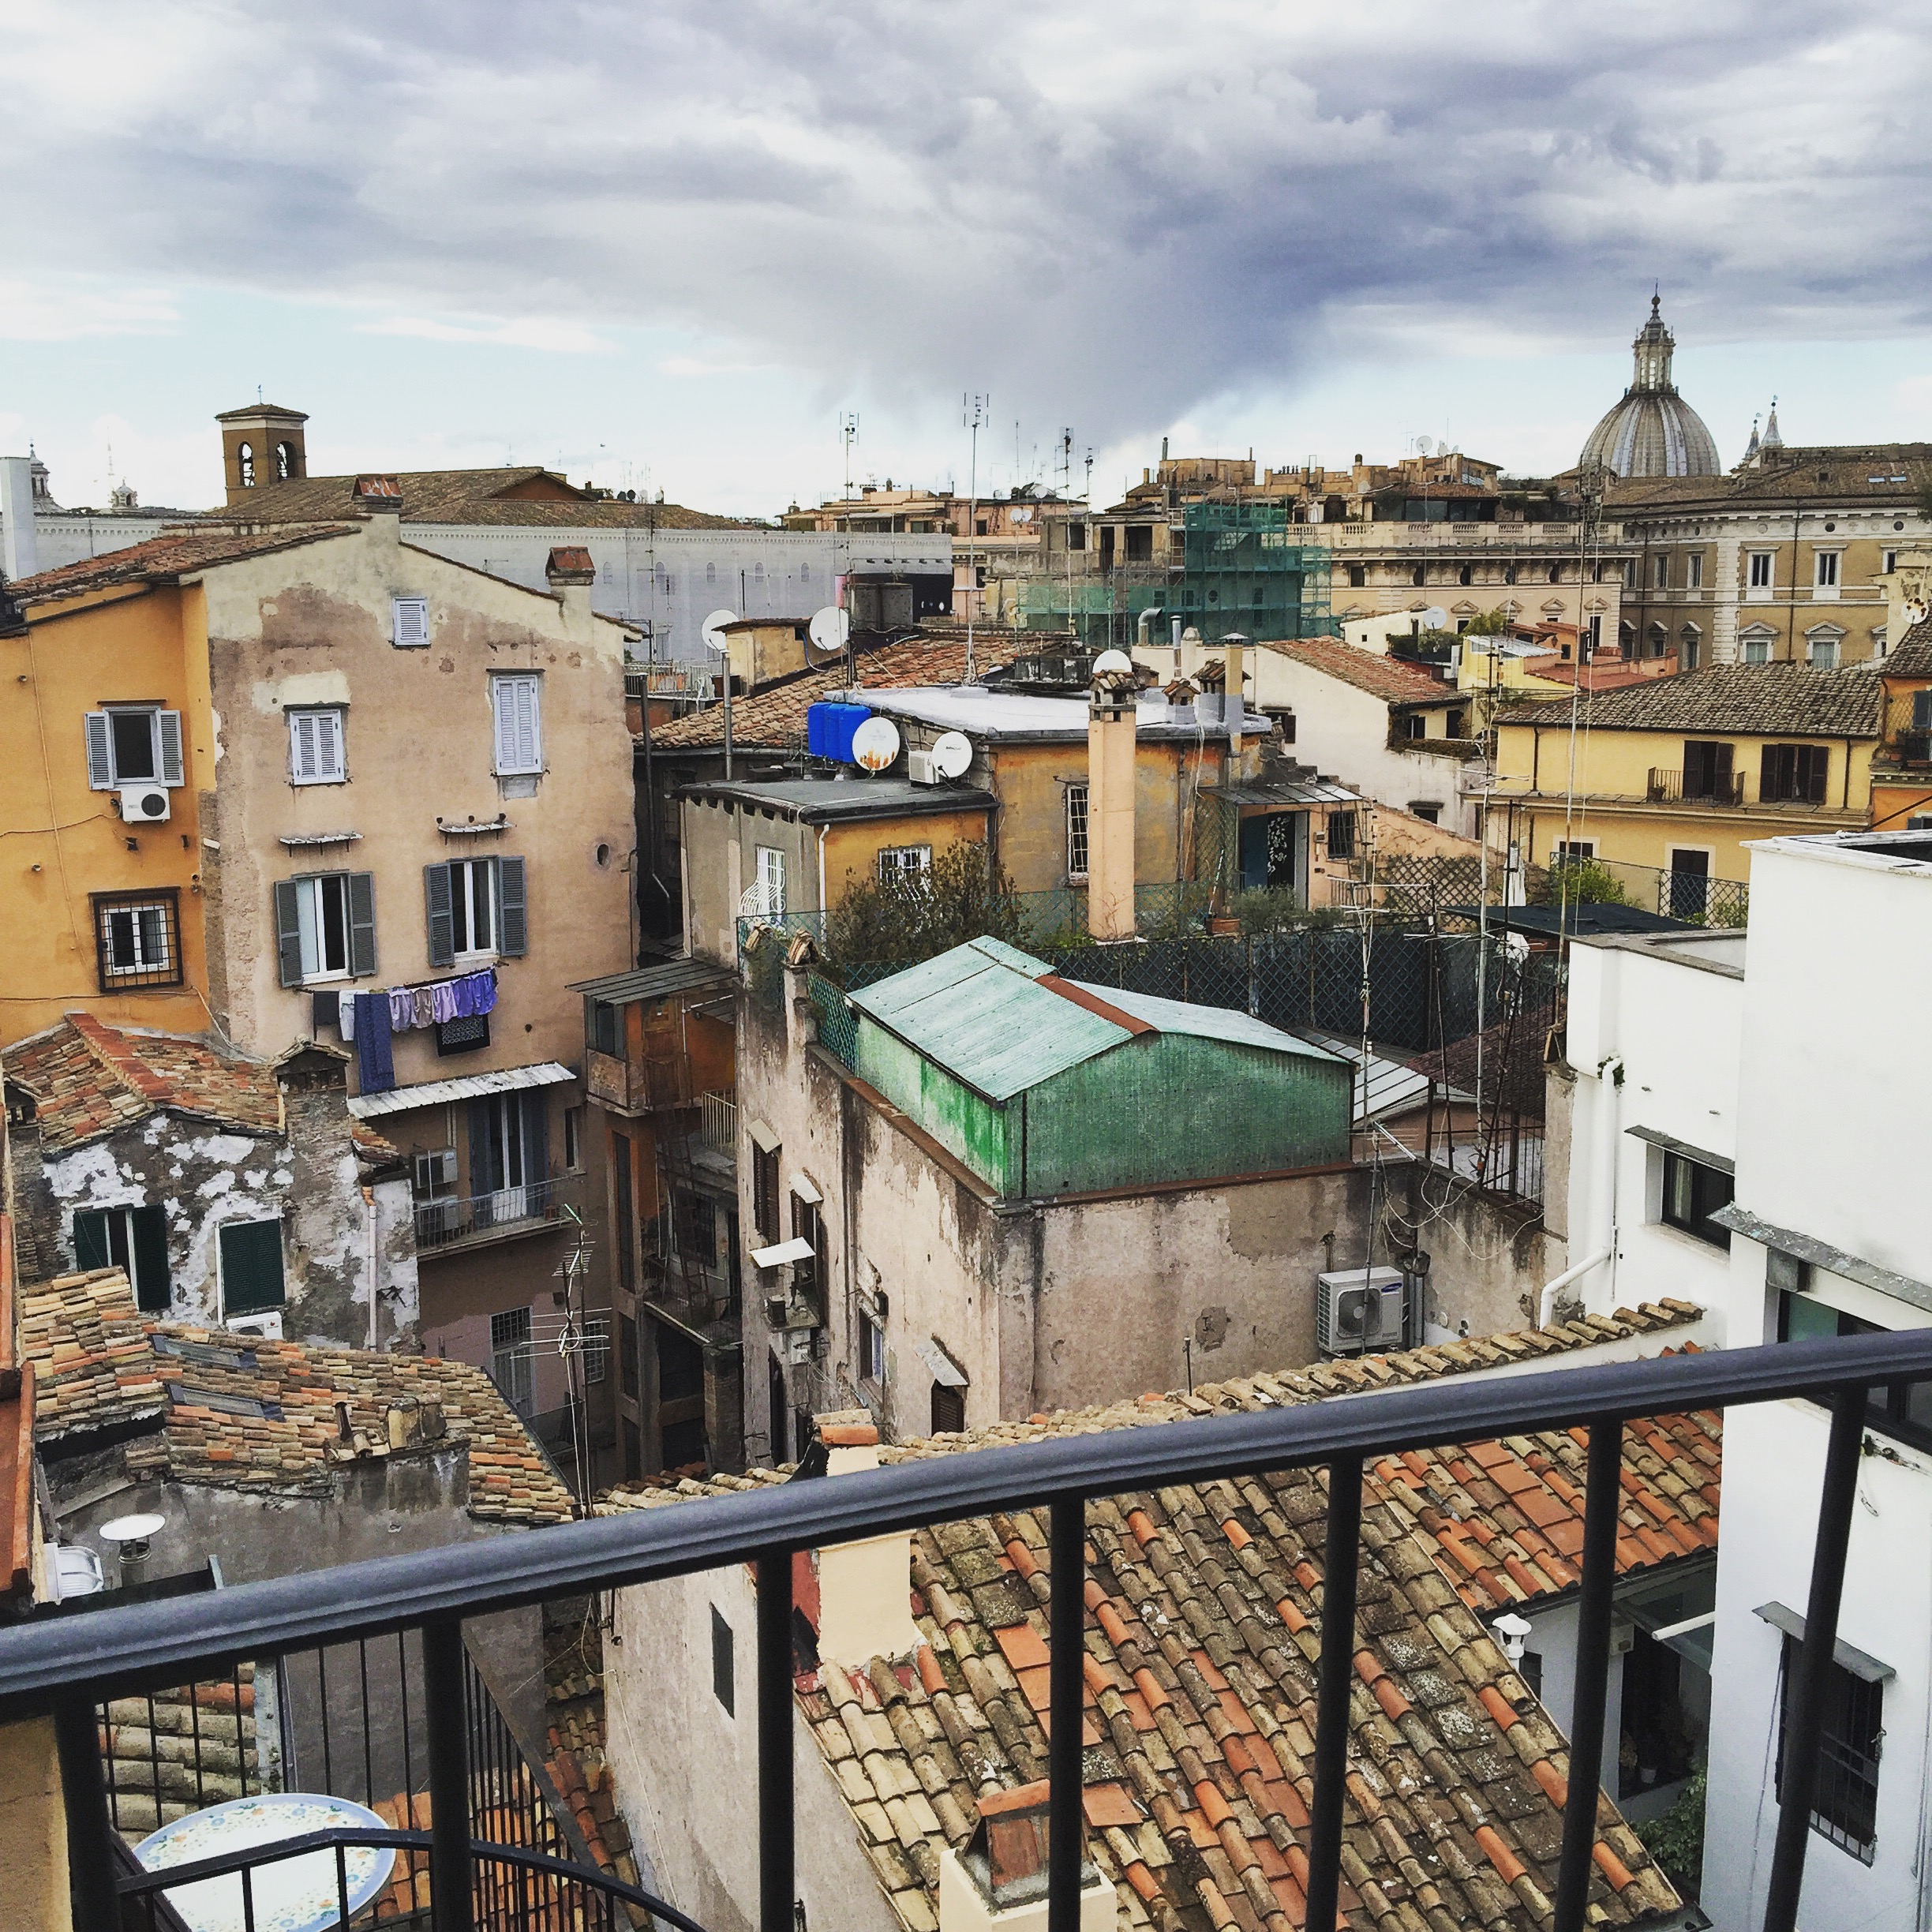 The early March view from our balcony in Rome at  Hotel Campo de' Fiori